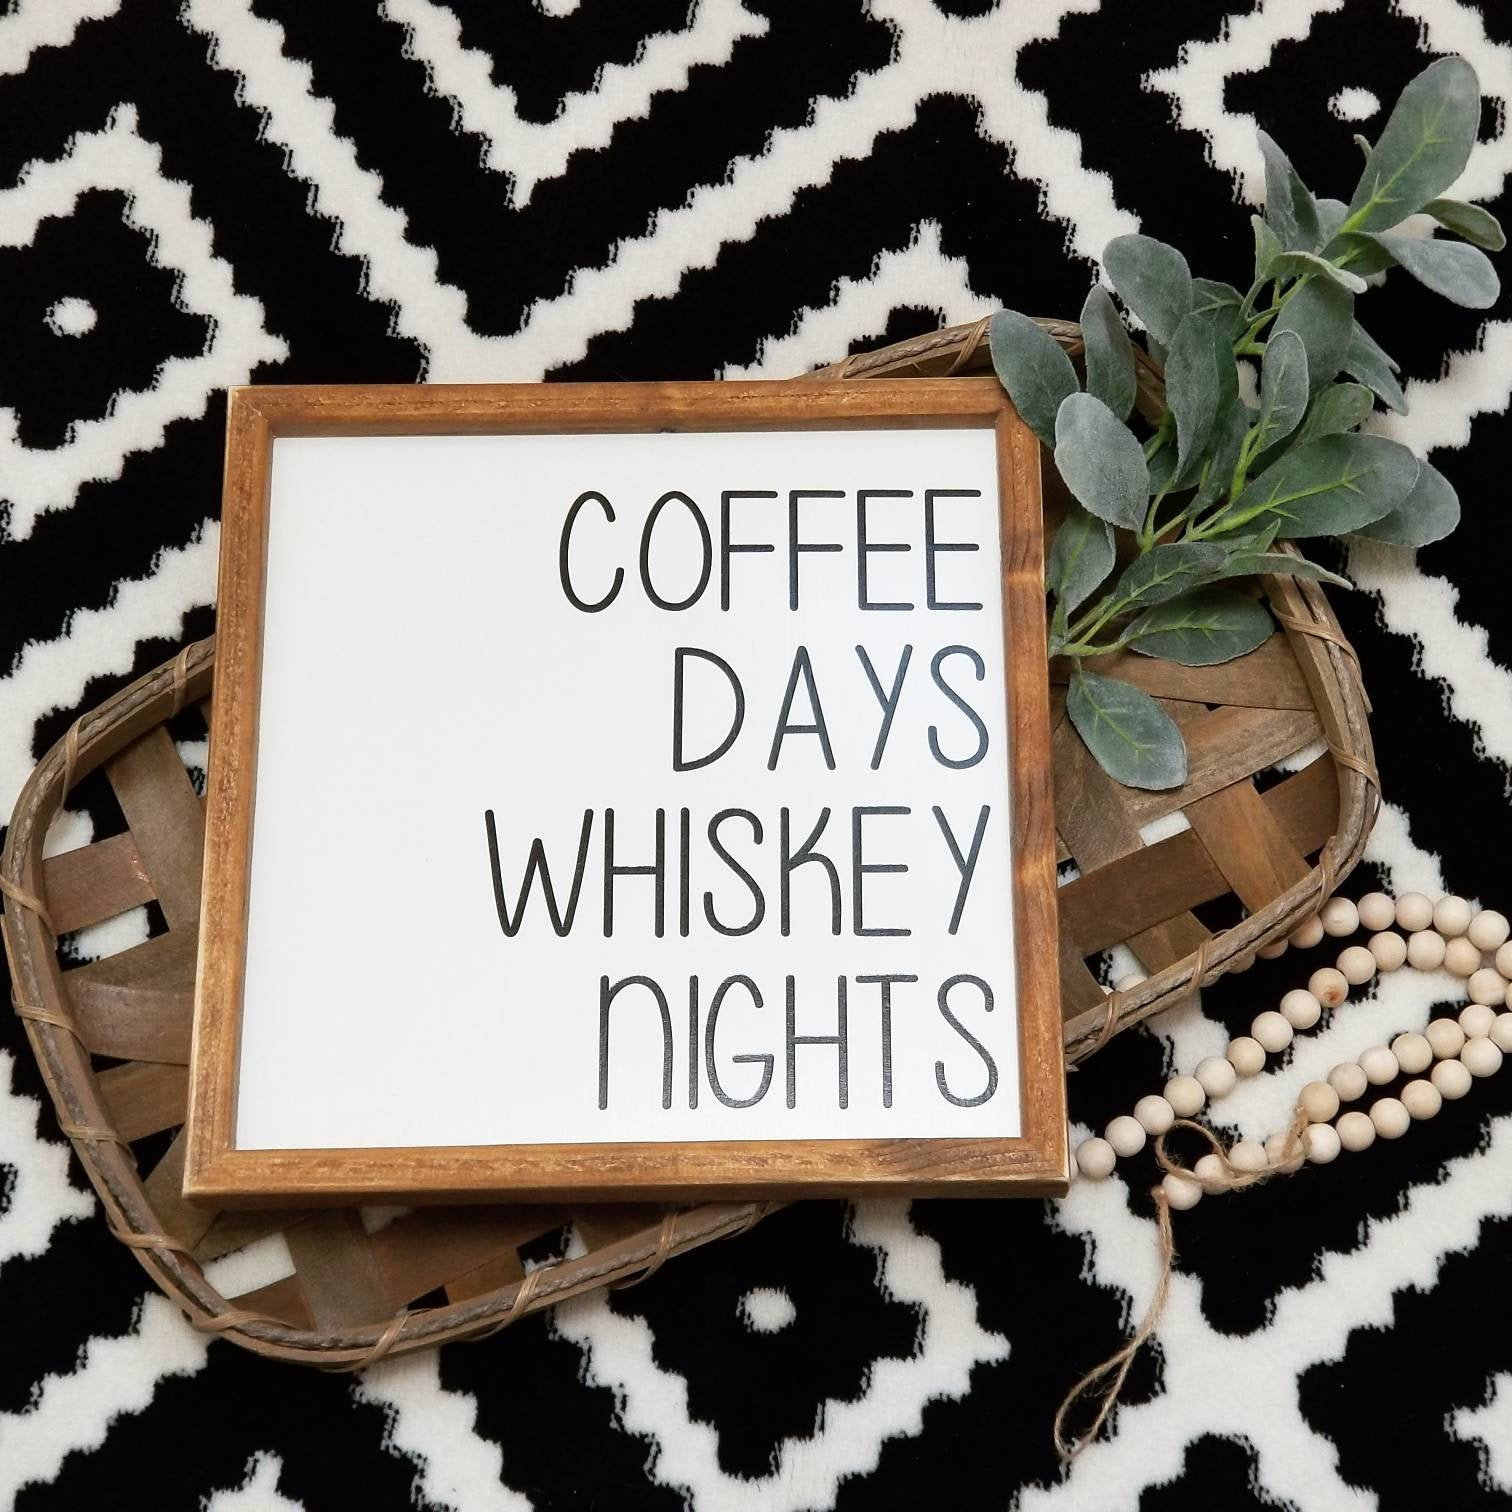 Coffee days whiskey nights sign